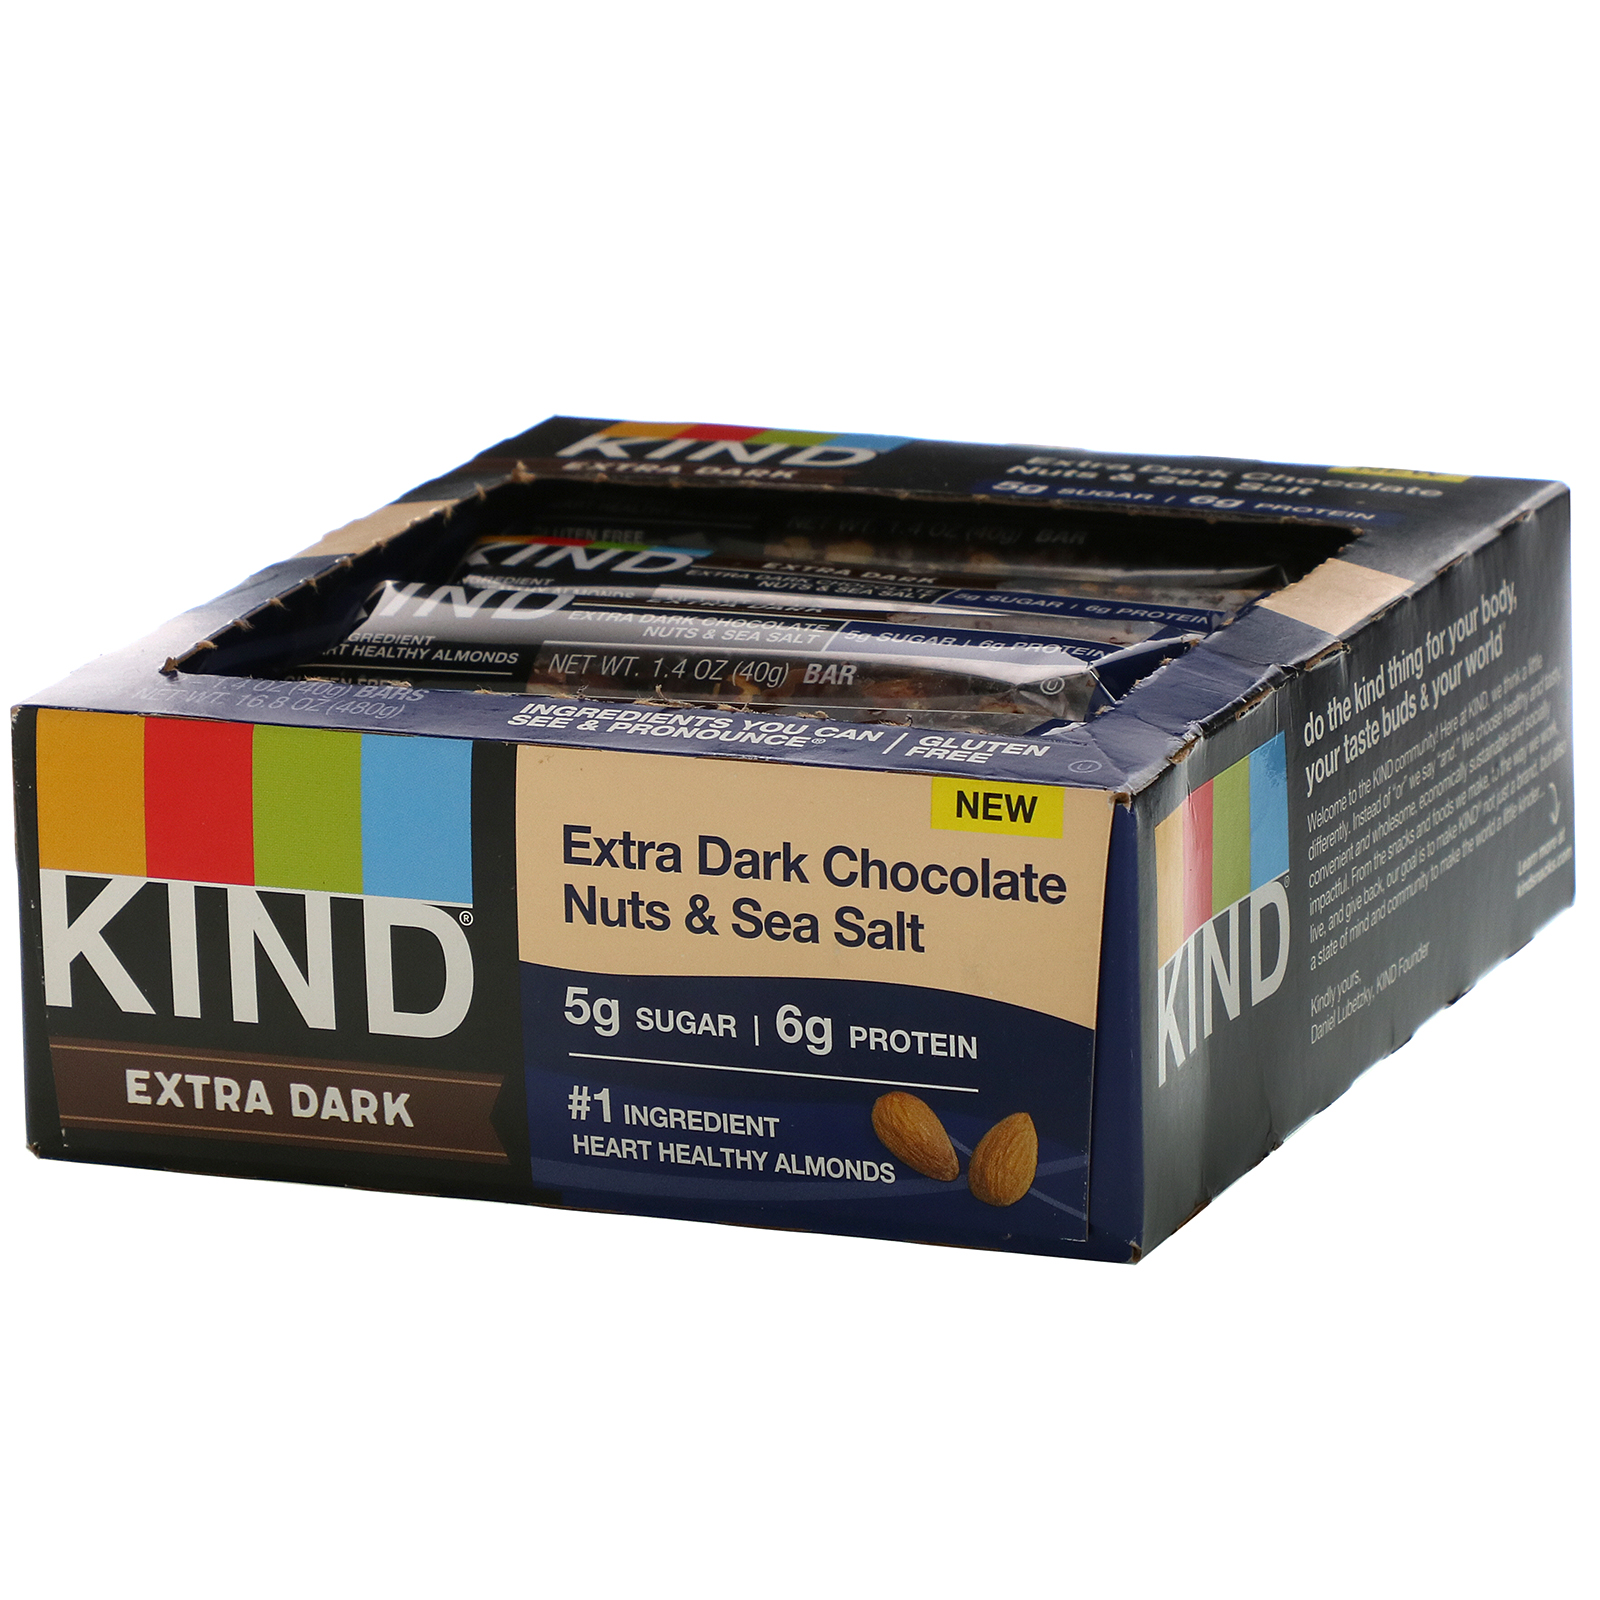 KIND Bars, Extra Dark Chocolate, Nuts & Sea Salt, 12 Bars, 1.4 oz (40 g) Each